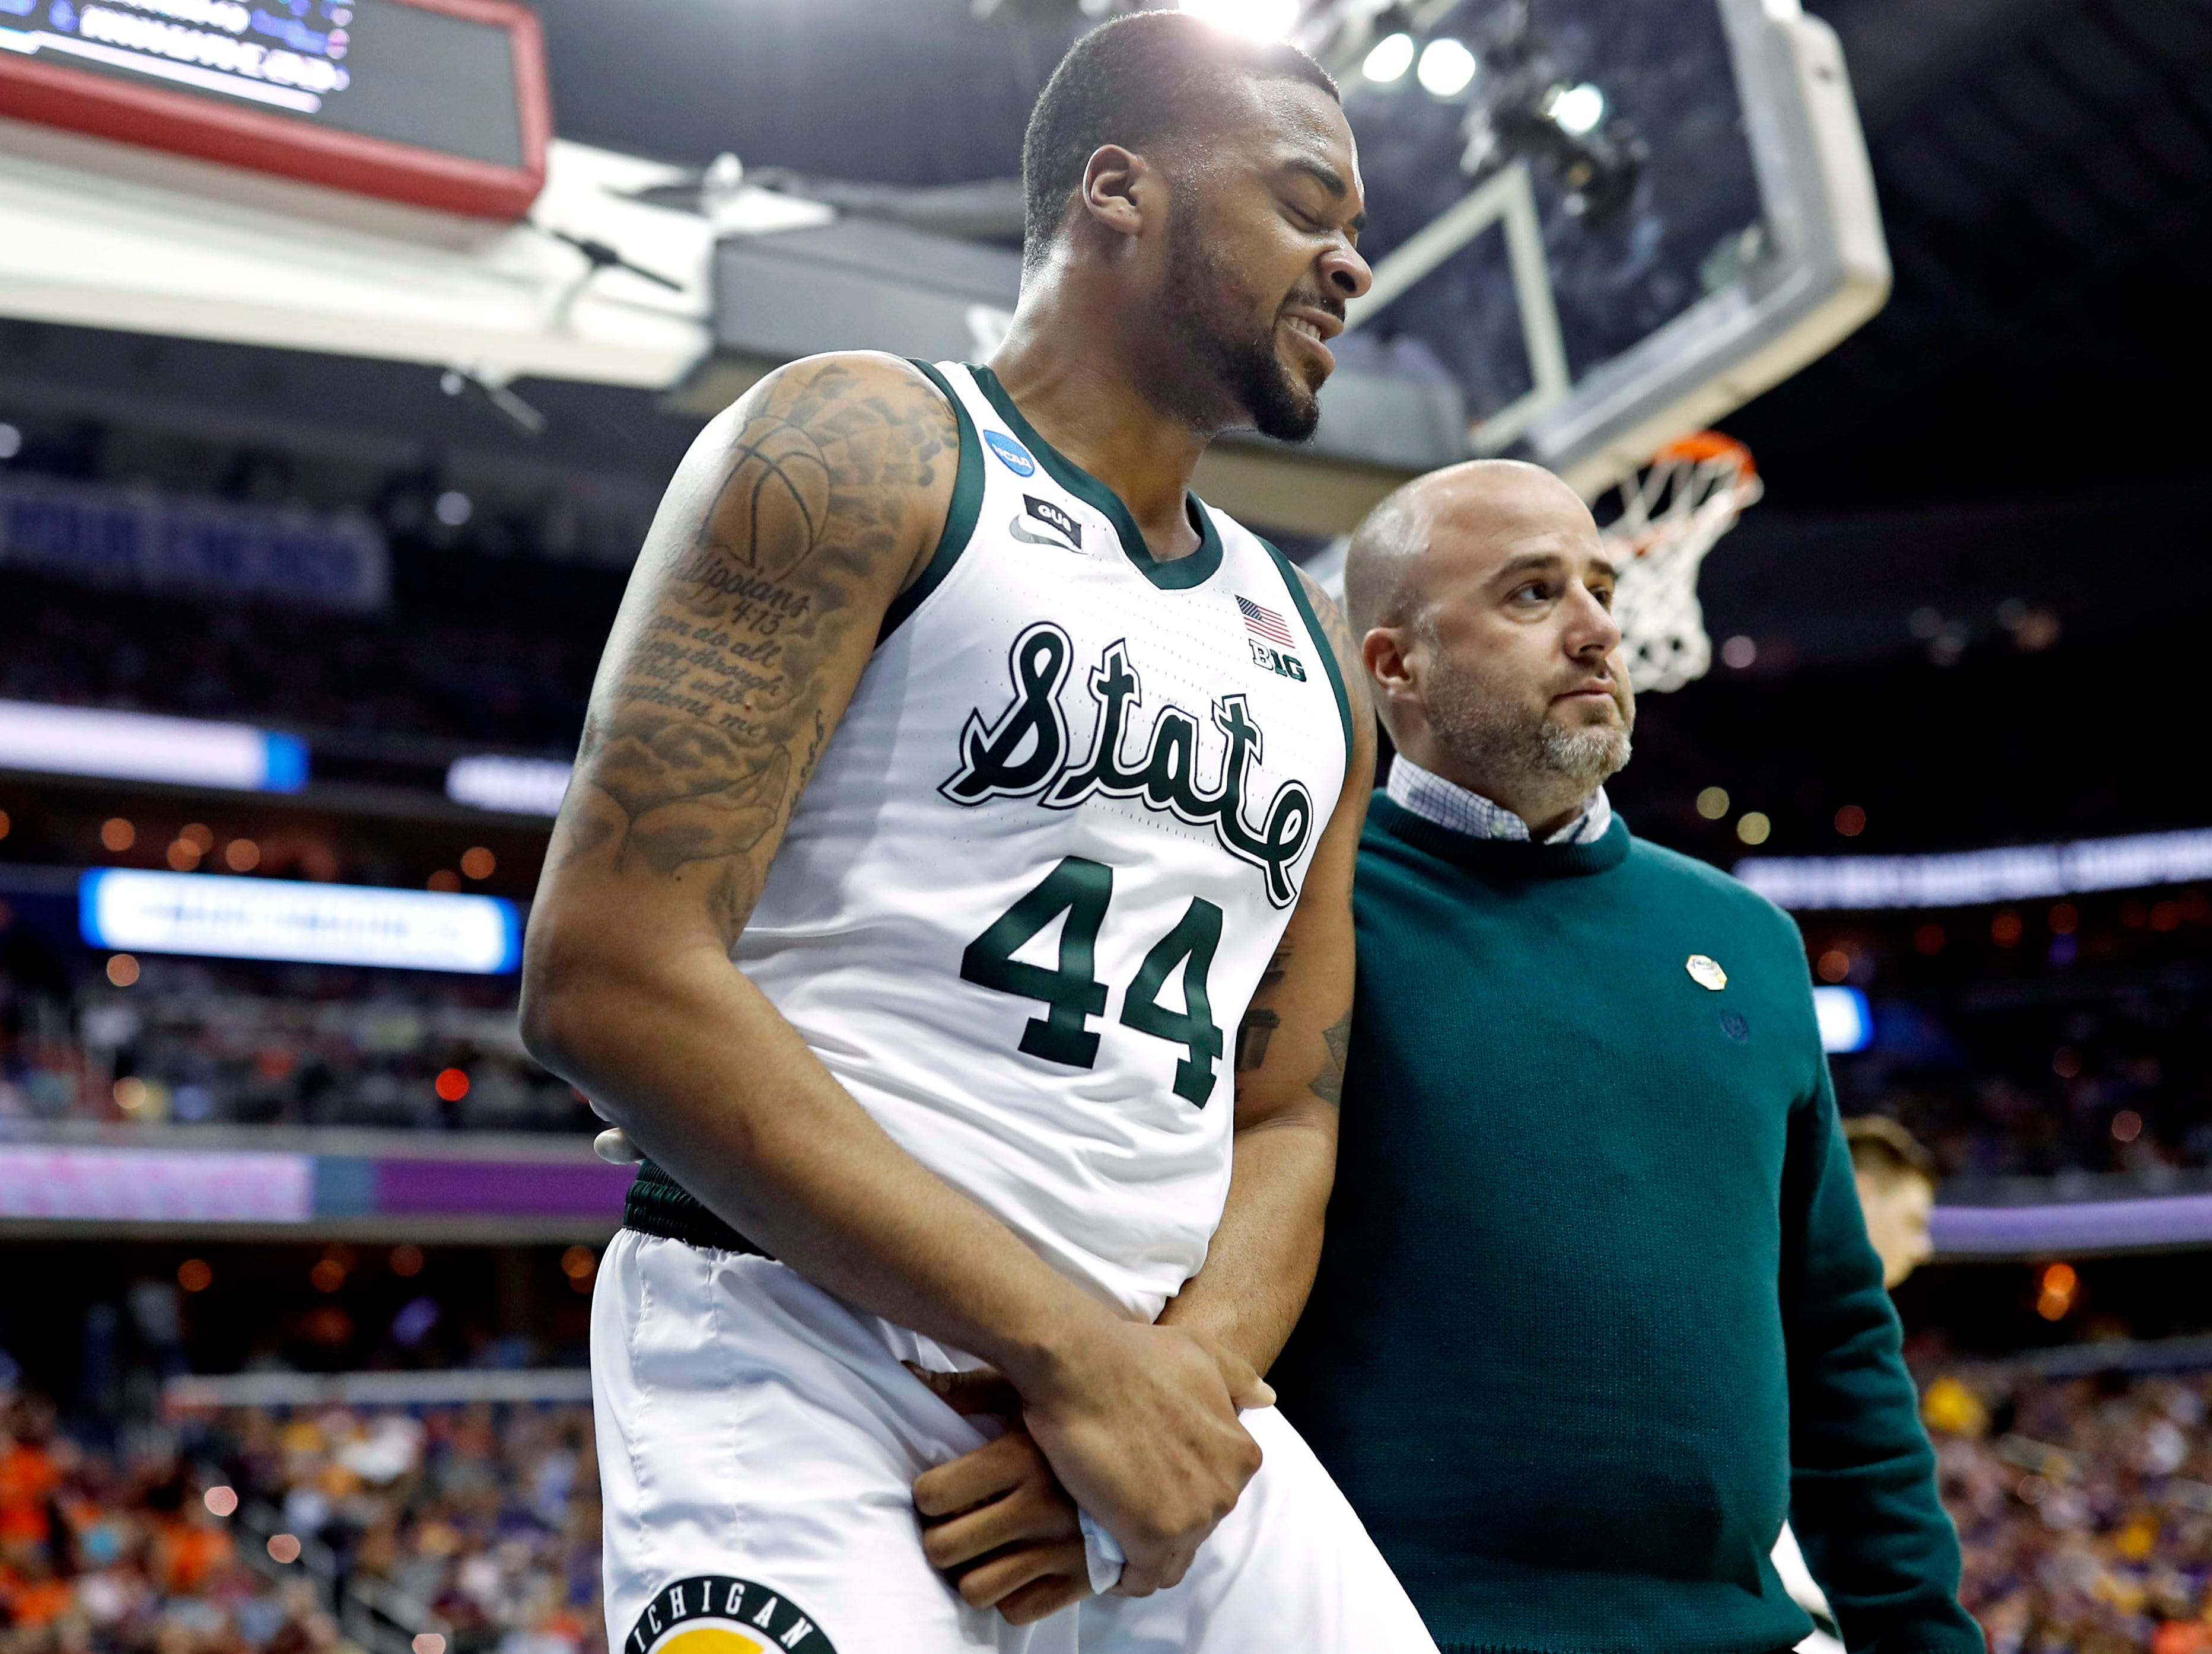 Michigan State Spartans forward Nick Ward (44) walks off the court after an injury during the second half against the LSU Tigers in the semifinals of the east regional of the 2019 NCAA Tournament at Capital One Arena.